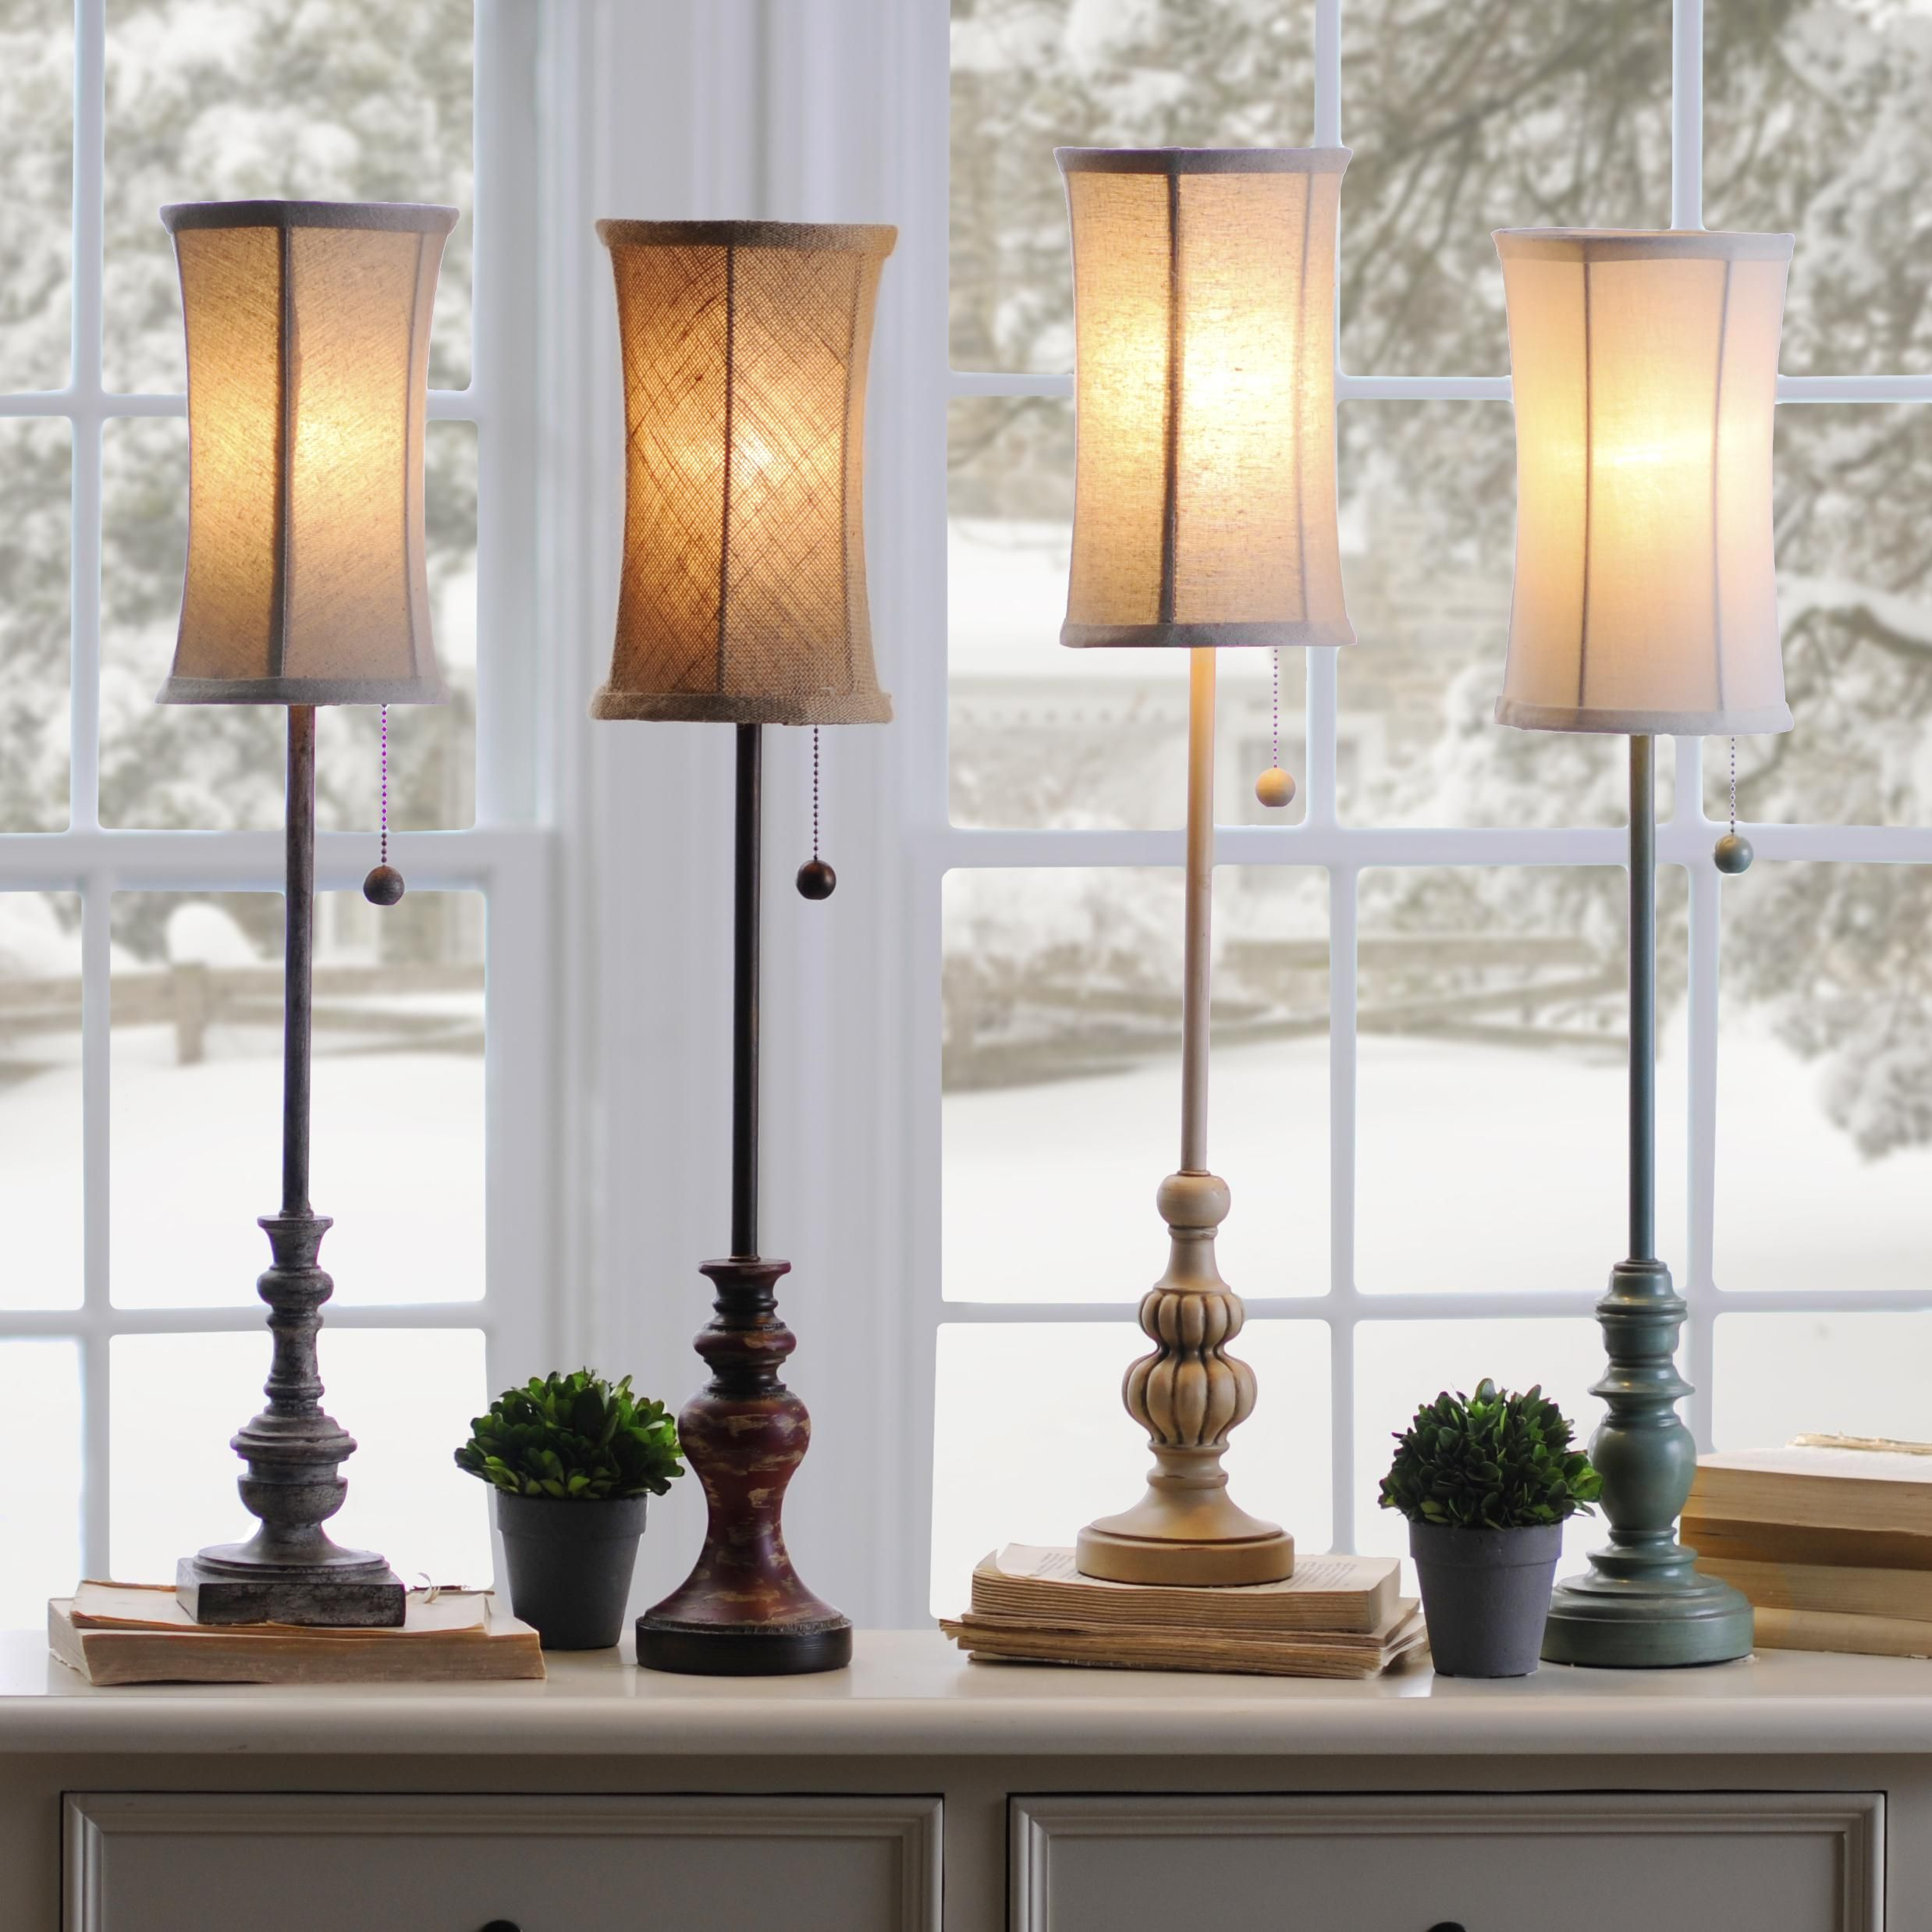 Buffet lamps are perfect for small tables or when you have limited space